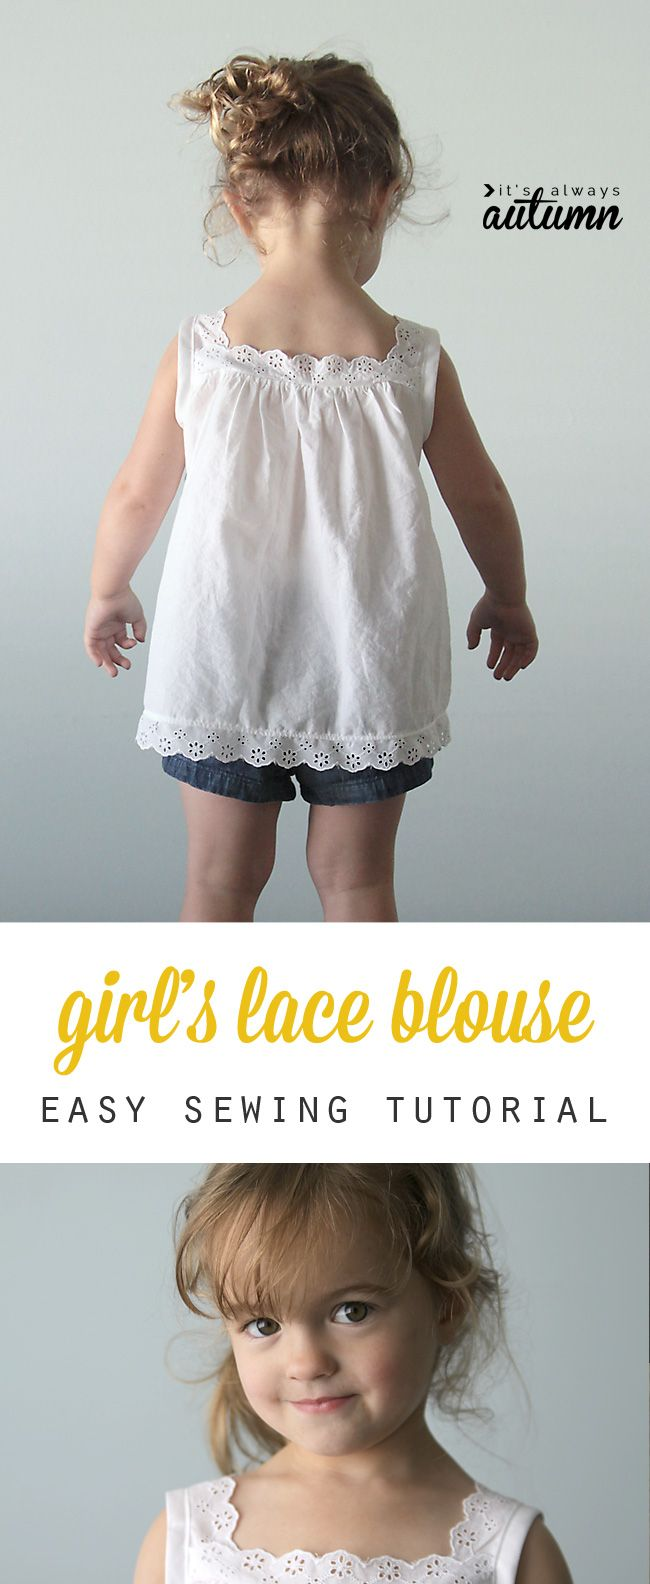 This is beautiful! The sewing tutorial actually looks pretty easy - I think I'm going to try it.